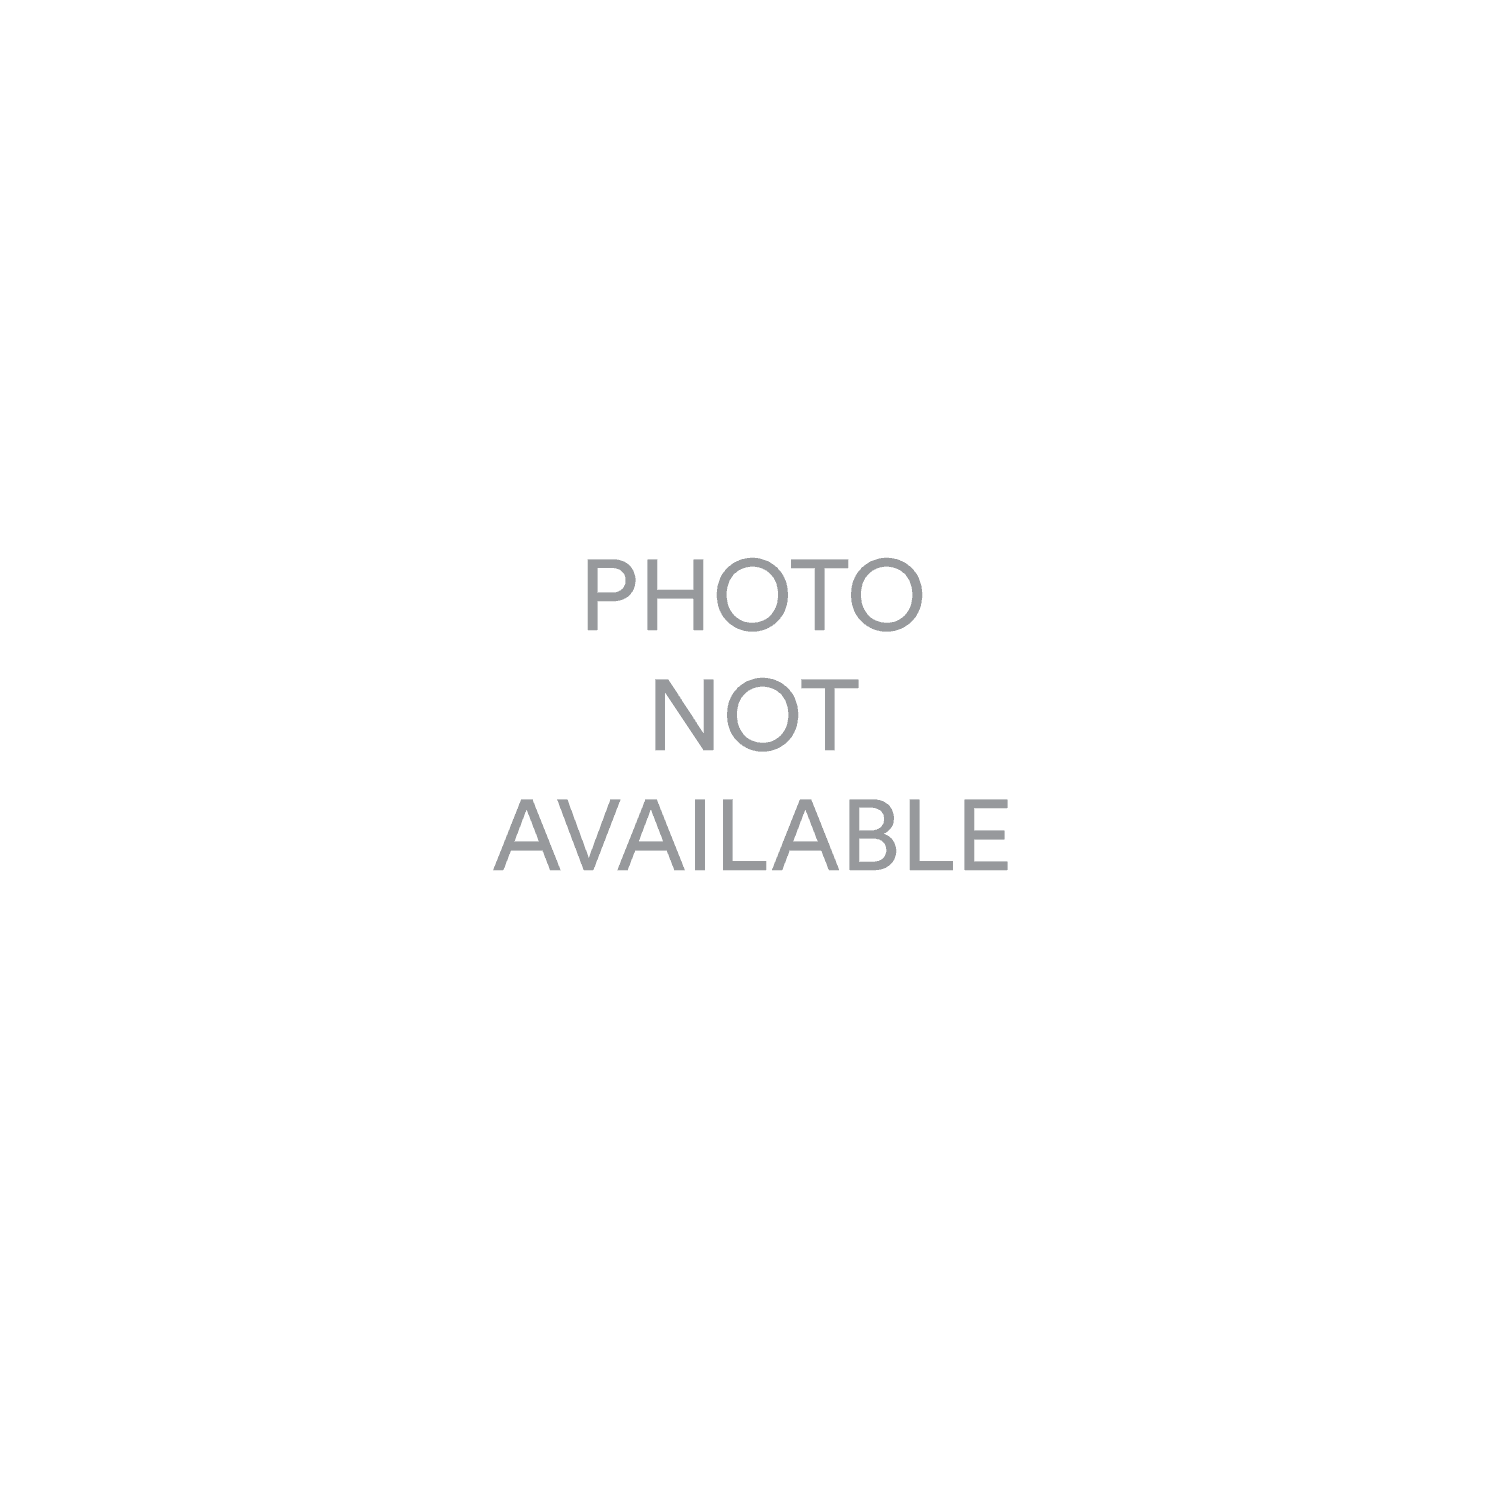 ht2612mq by Tacori - RoyalT Marquise engagement ring